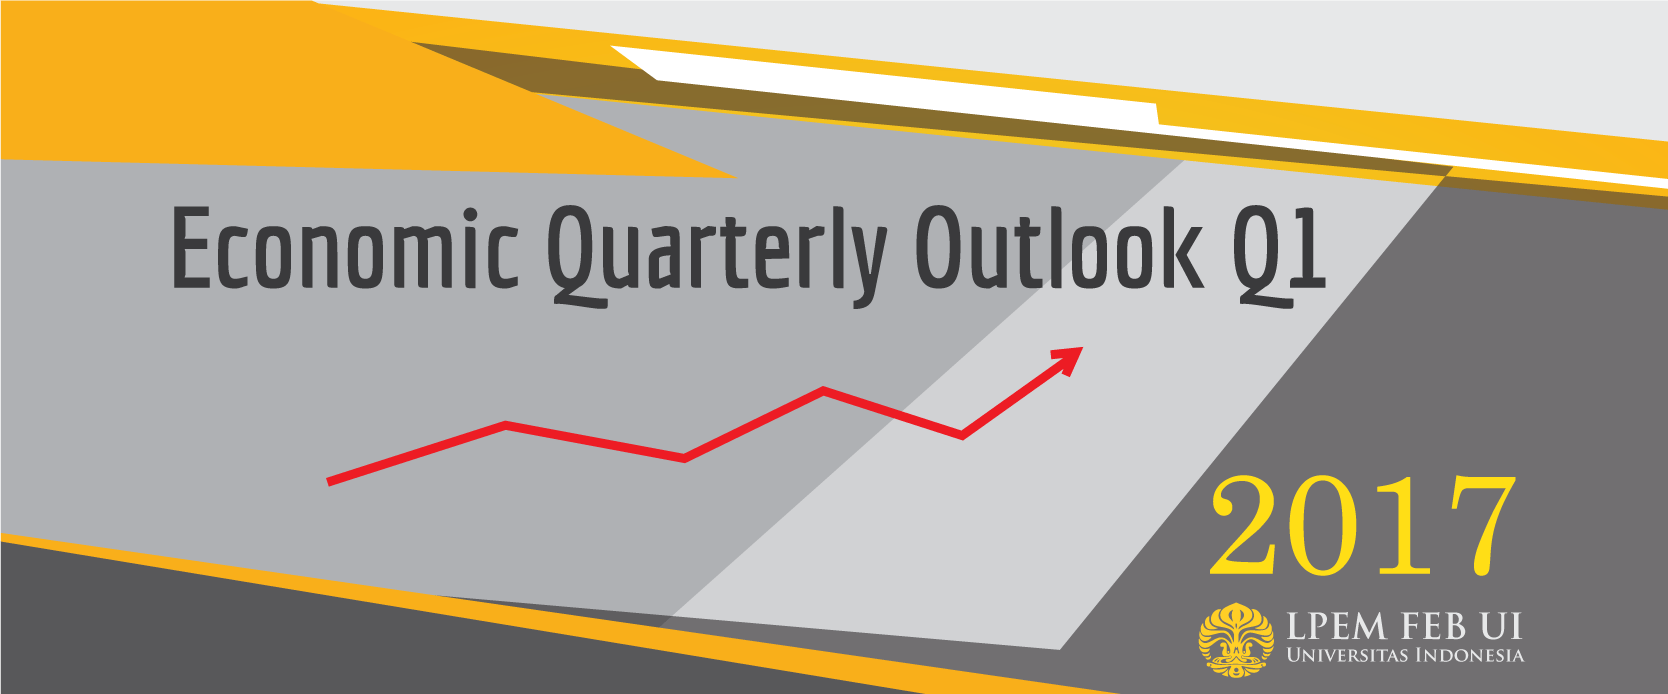 LPEM ECONOMIC QUARTERLY OUTLOOK 2017 Q1